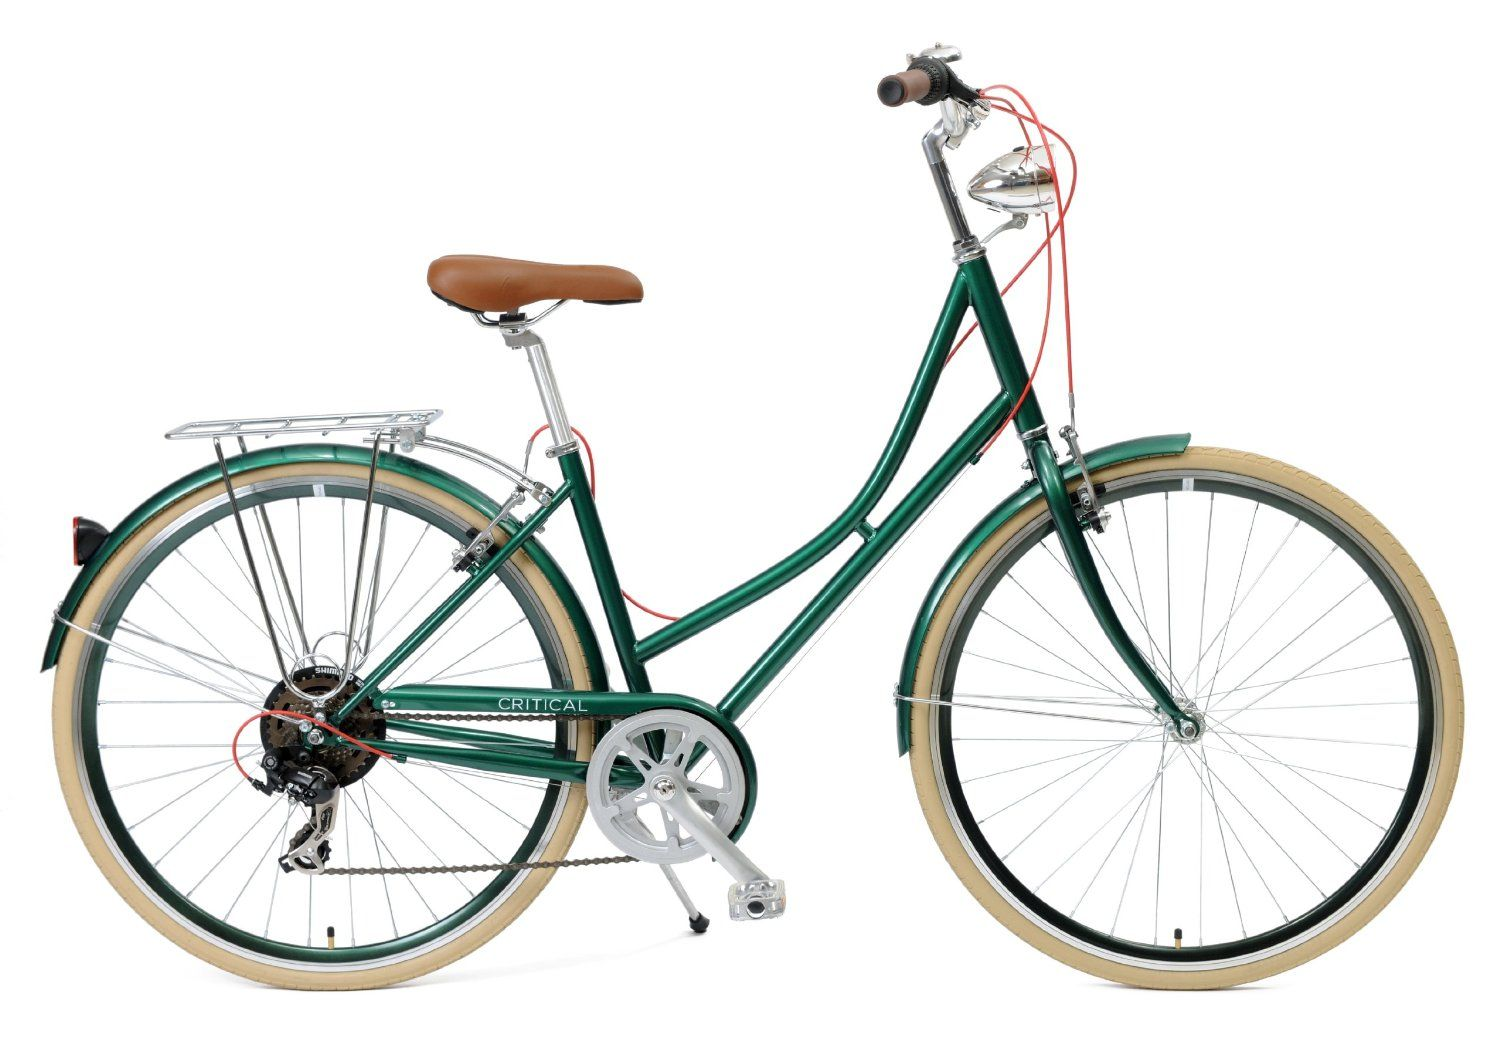 Five Great City Commuter Bicycles Best Budget Options With